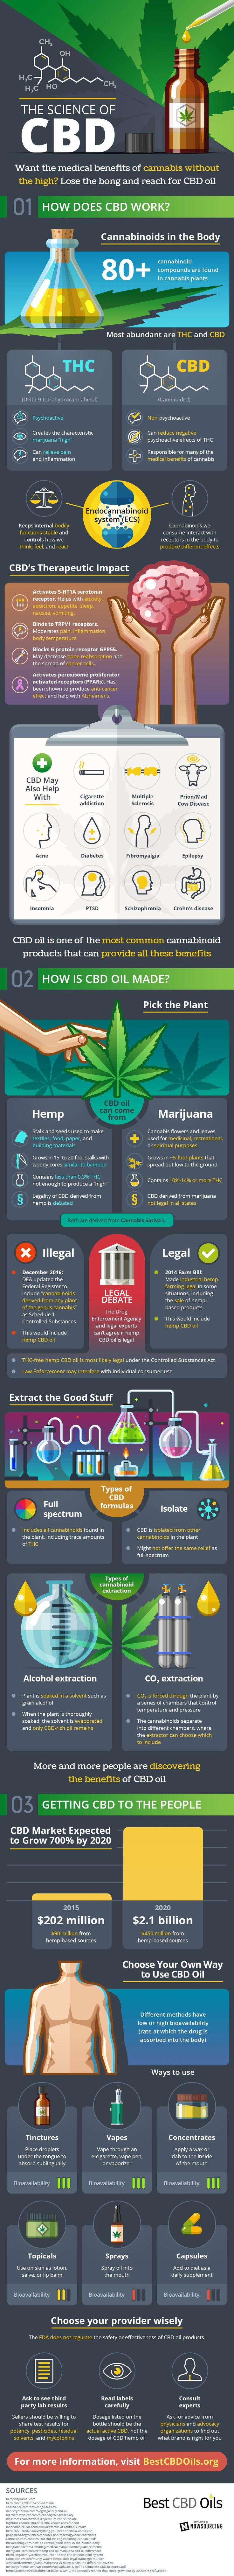 CBD Oil Science #Infographic #Health #Science